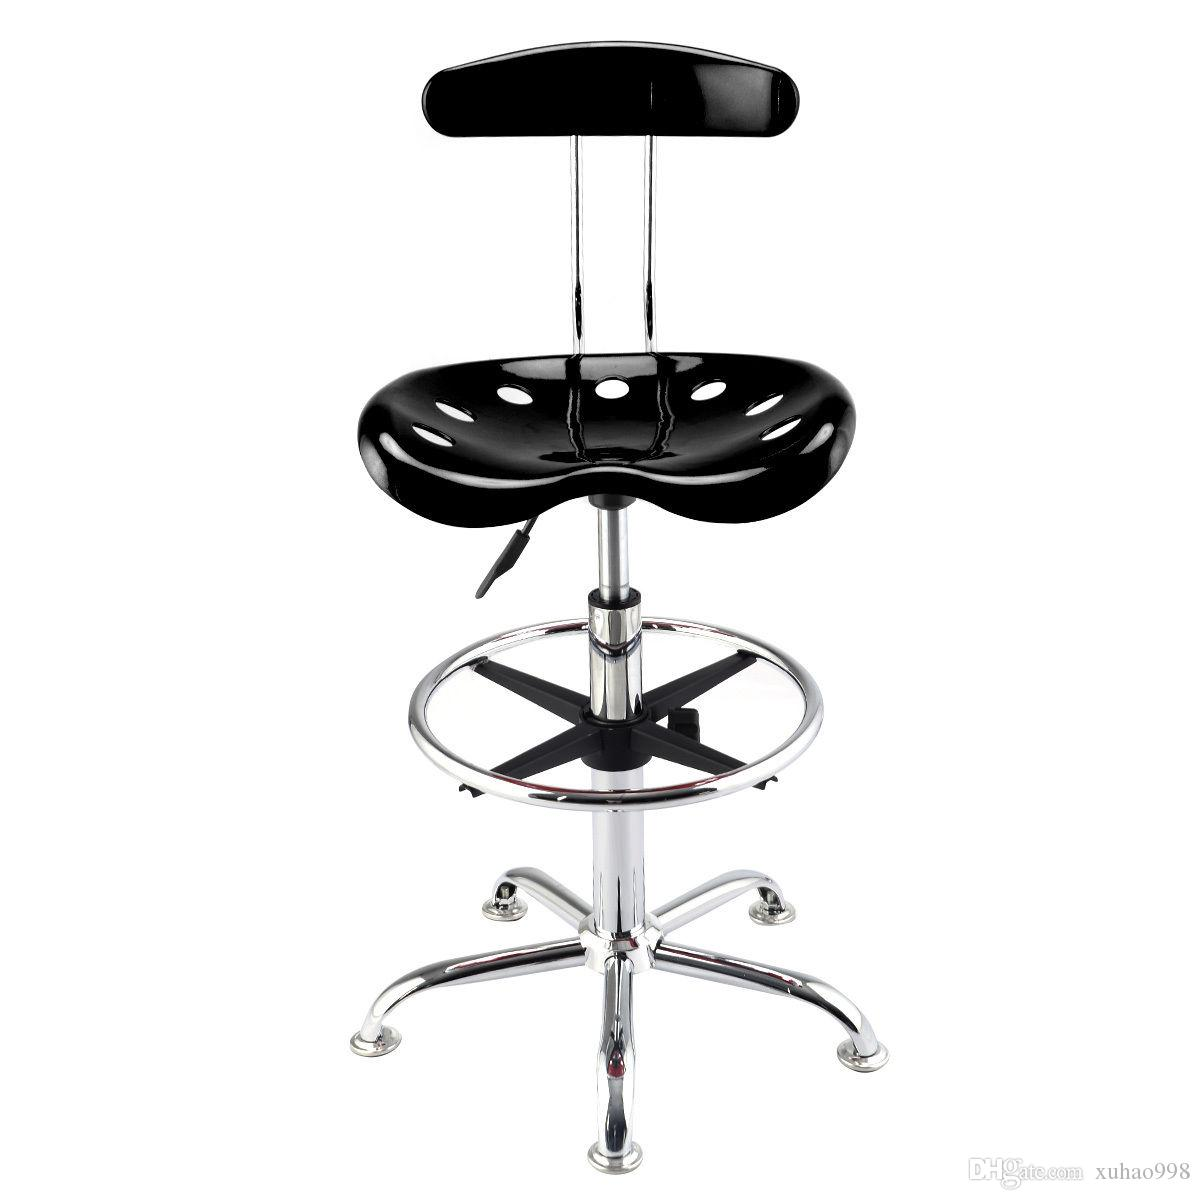 2018 Adjustable Bar Stools Abs Tractor Seat Chrome Kitchen Drafting Chair  Black From Xuhao998, $31.16 | Dhgate.Com